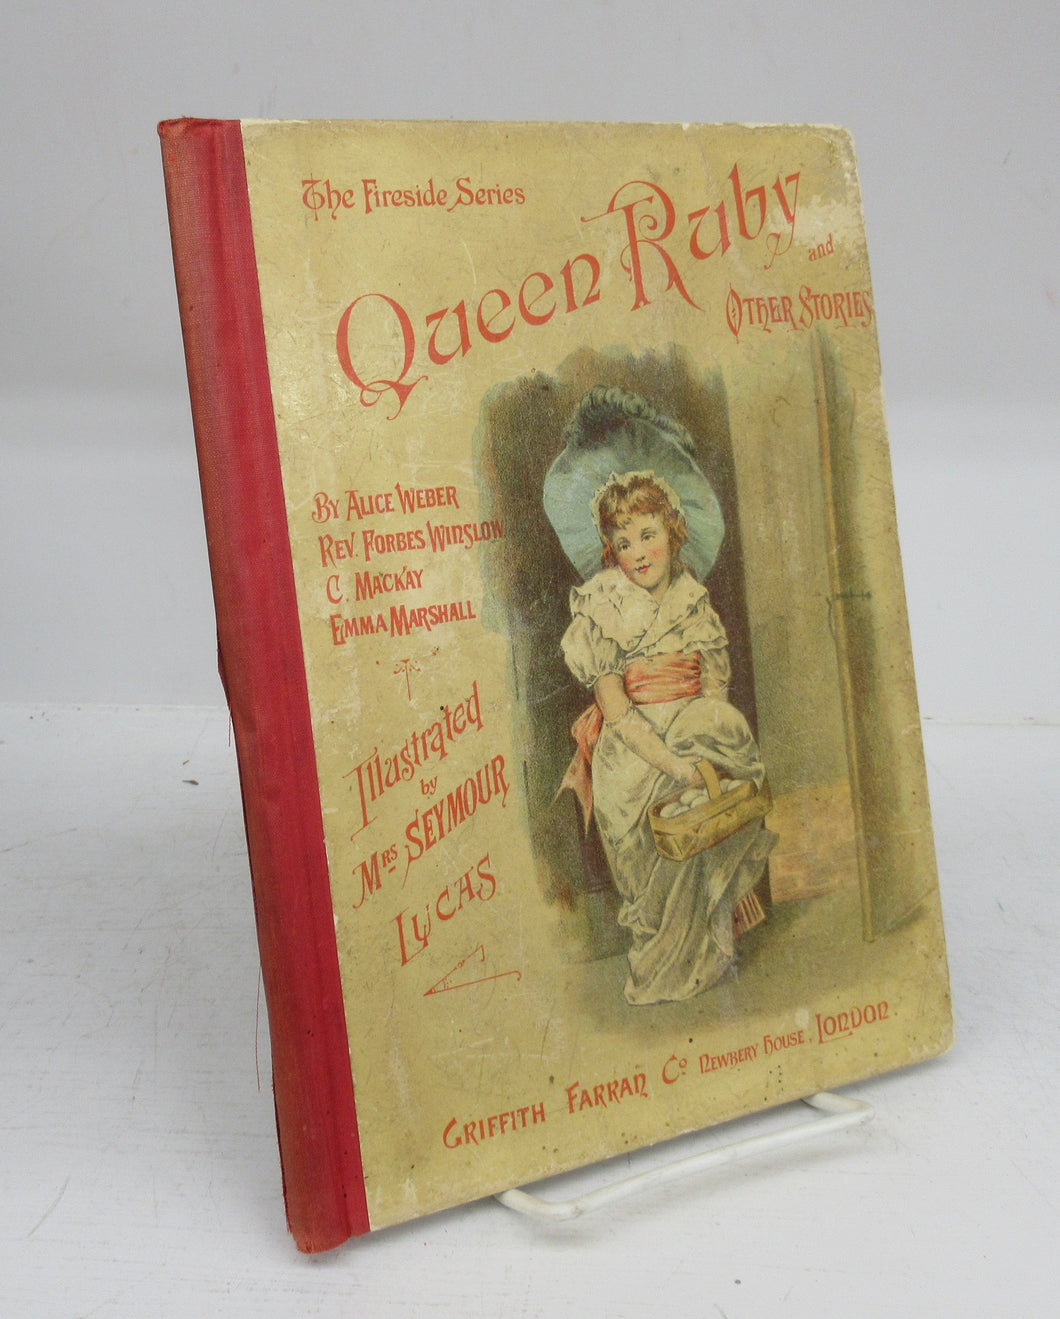 Queen Ruby and Other Stories